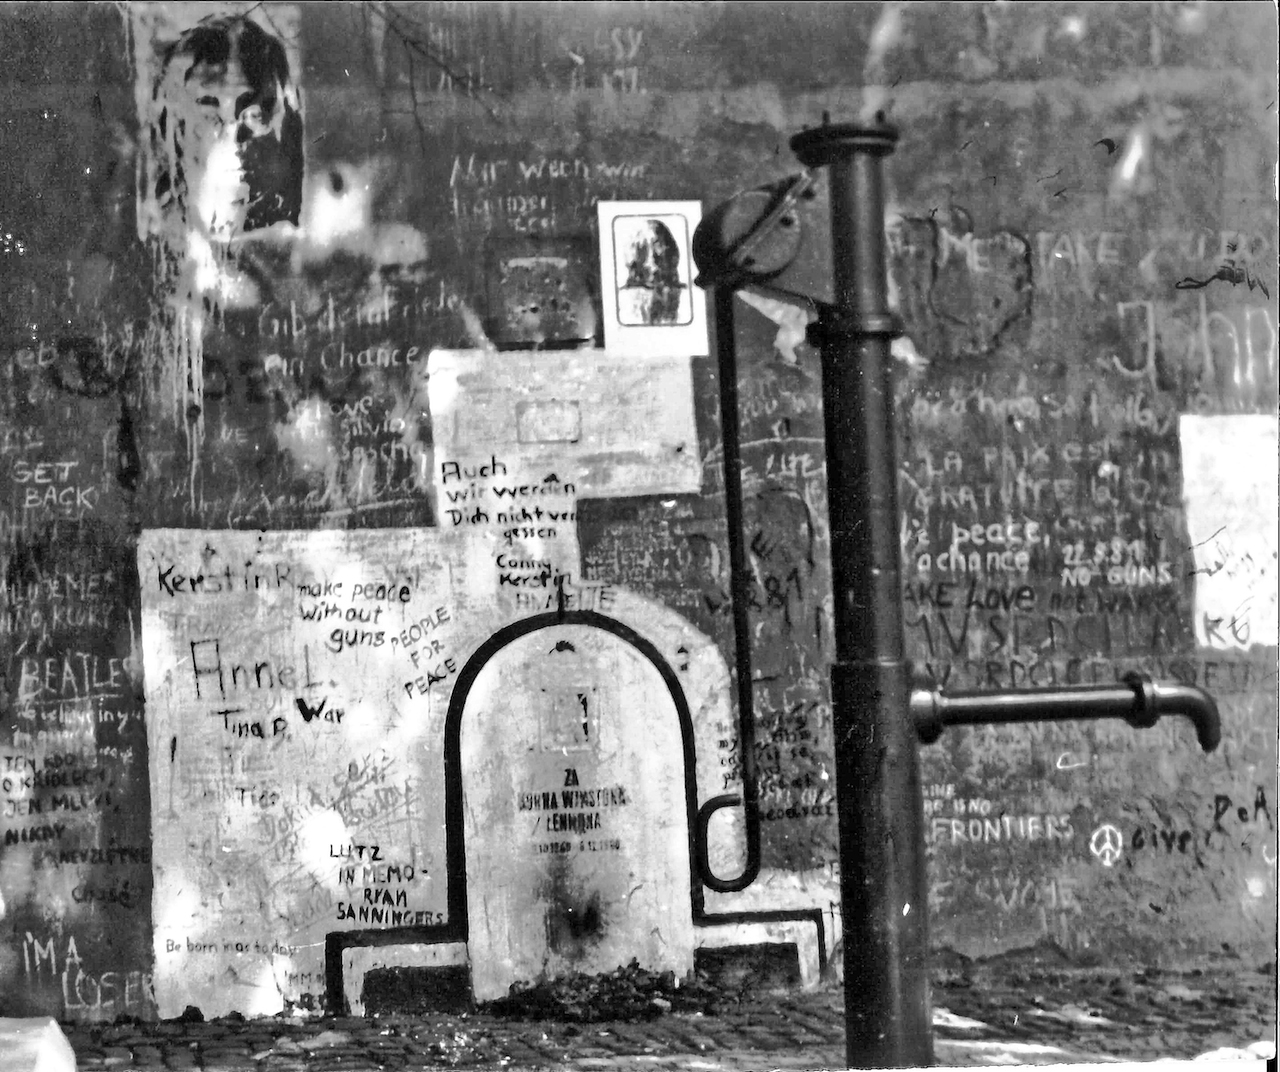 The John Lennon Wall in August 1981 (photo by Neptuul via Wikimedia Commons)